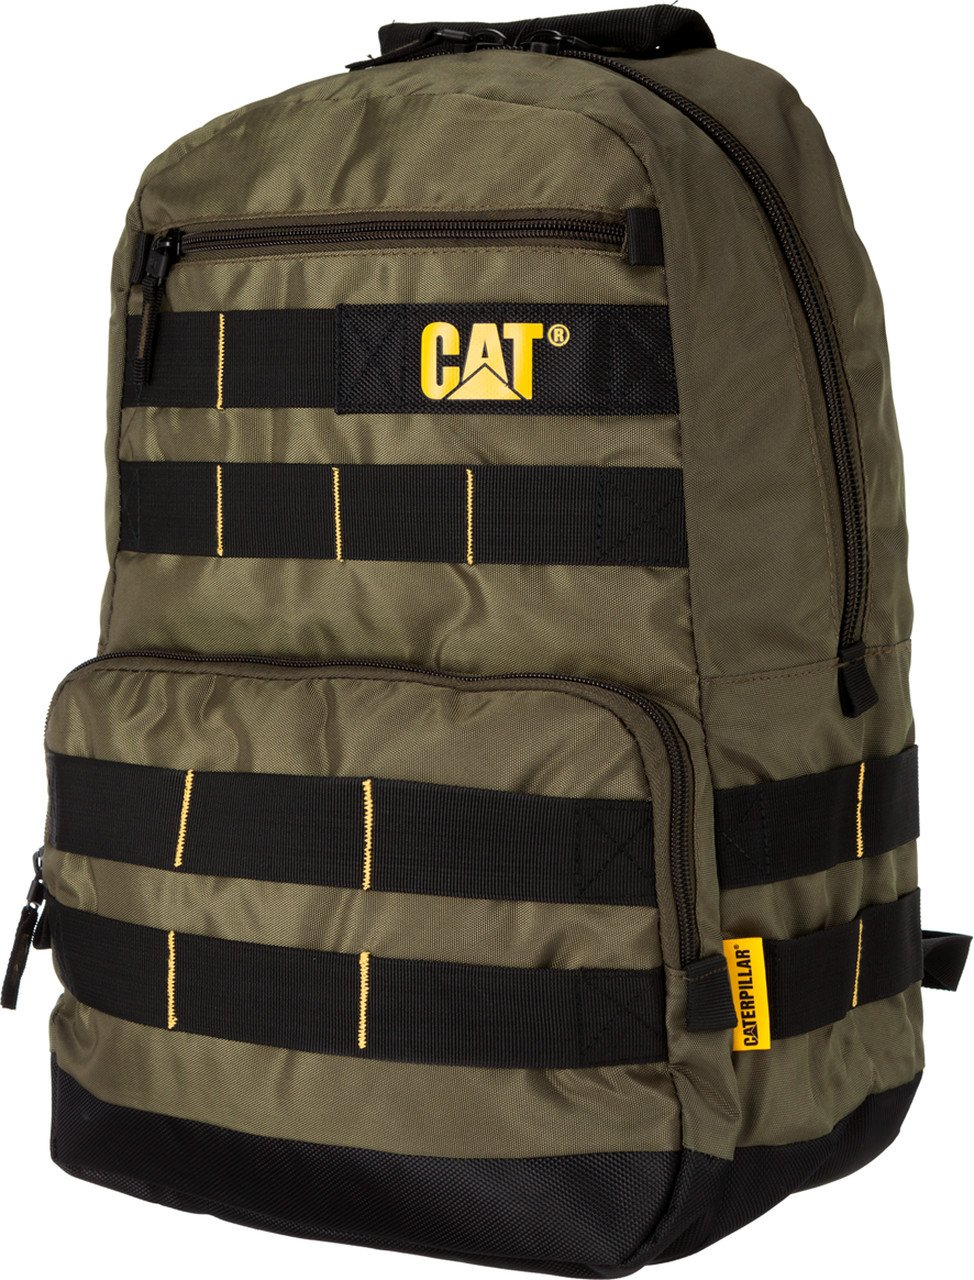 high-quality Caterpillar backpack